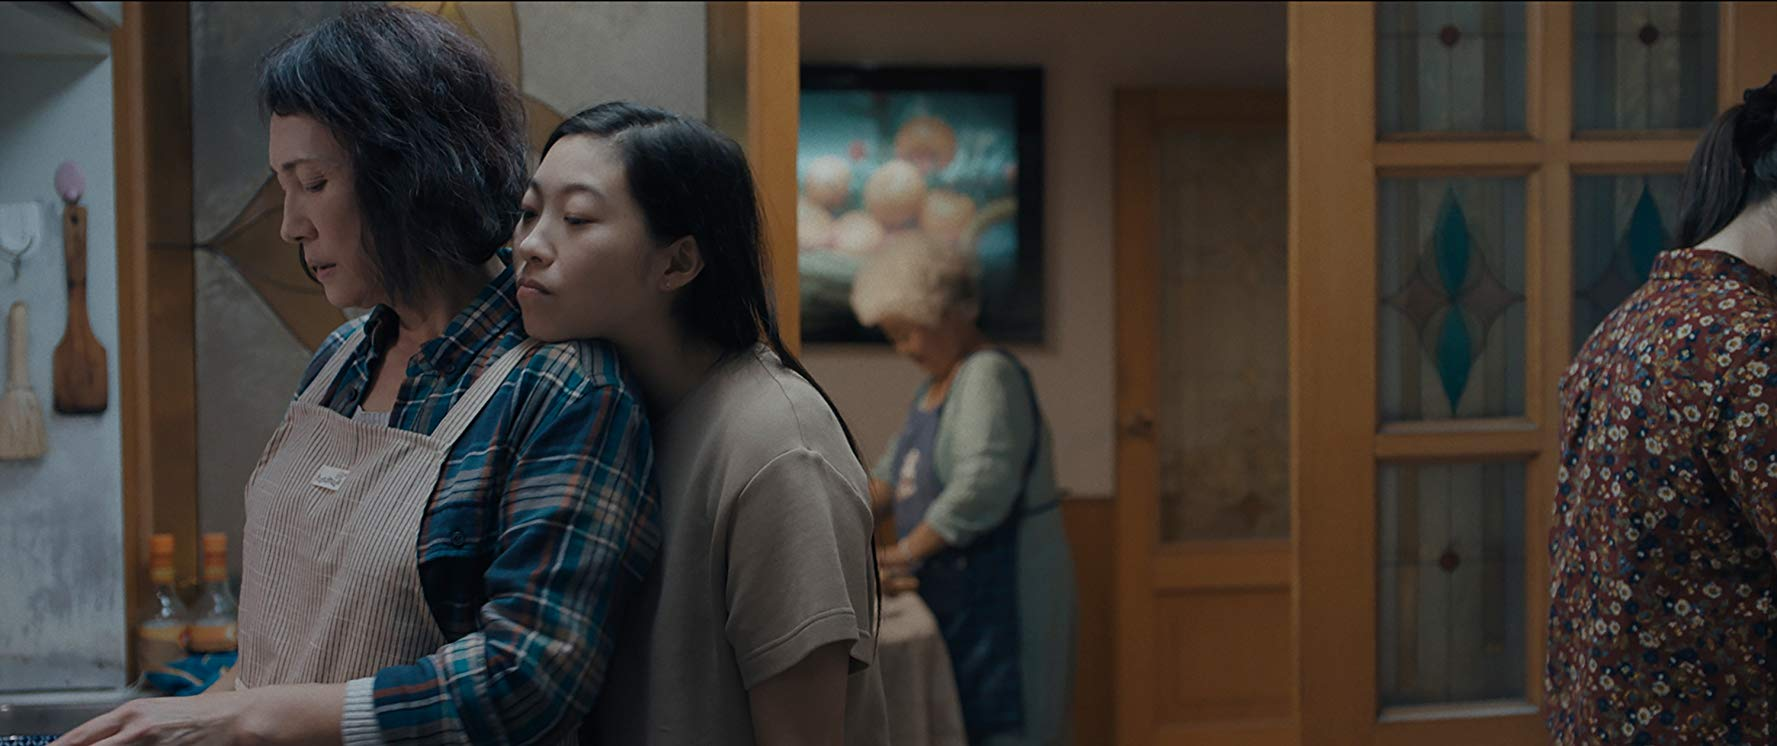 Diana Lin and Awkwafina in The Farewell (2019)